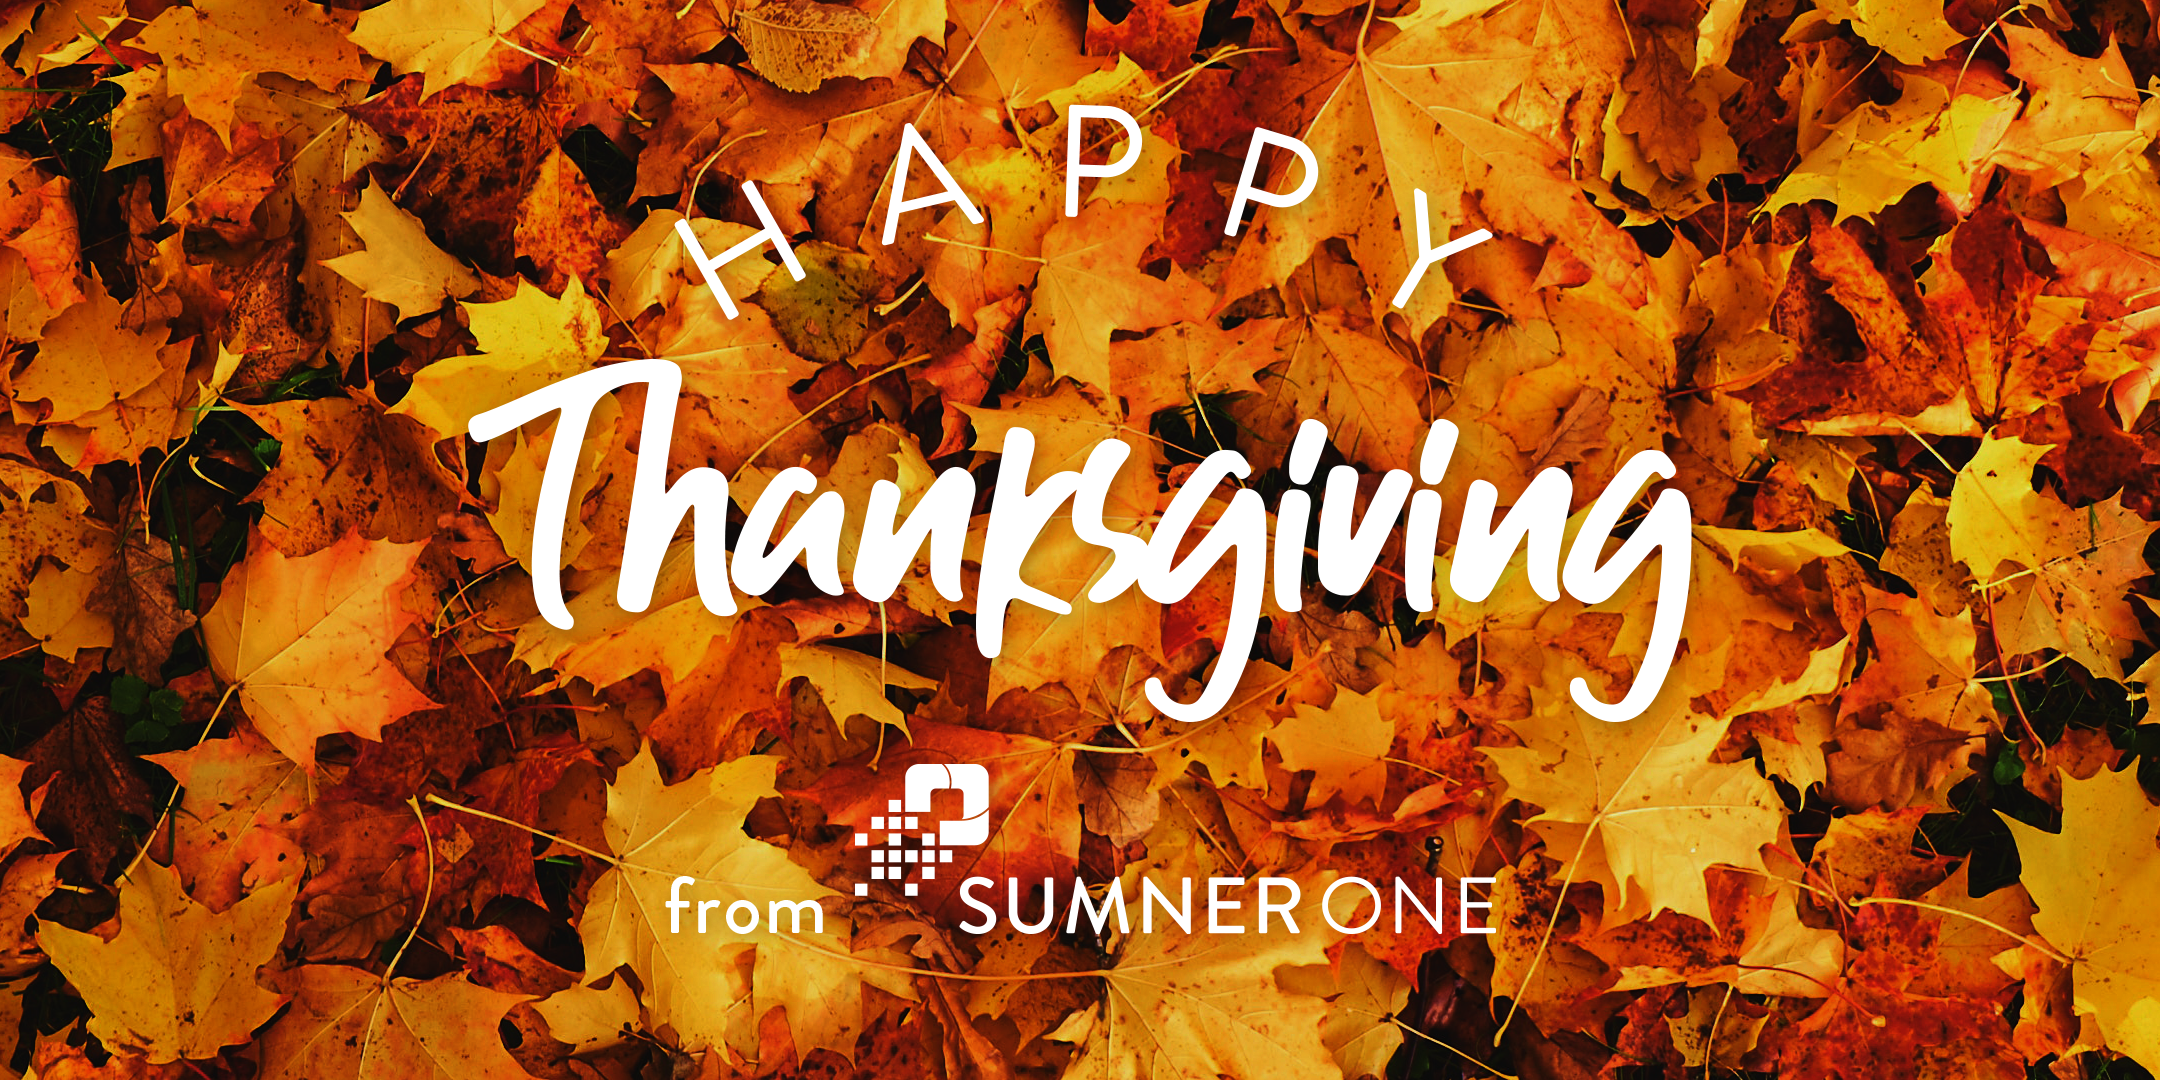 Happy-Thanksgiving-SumnerOne